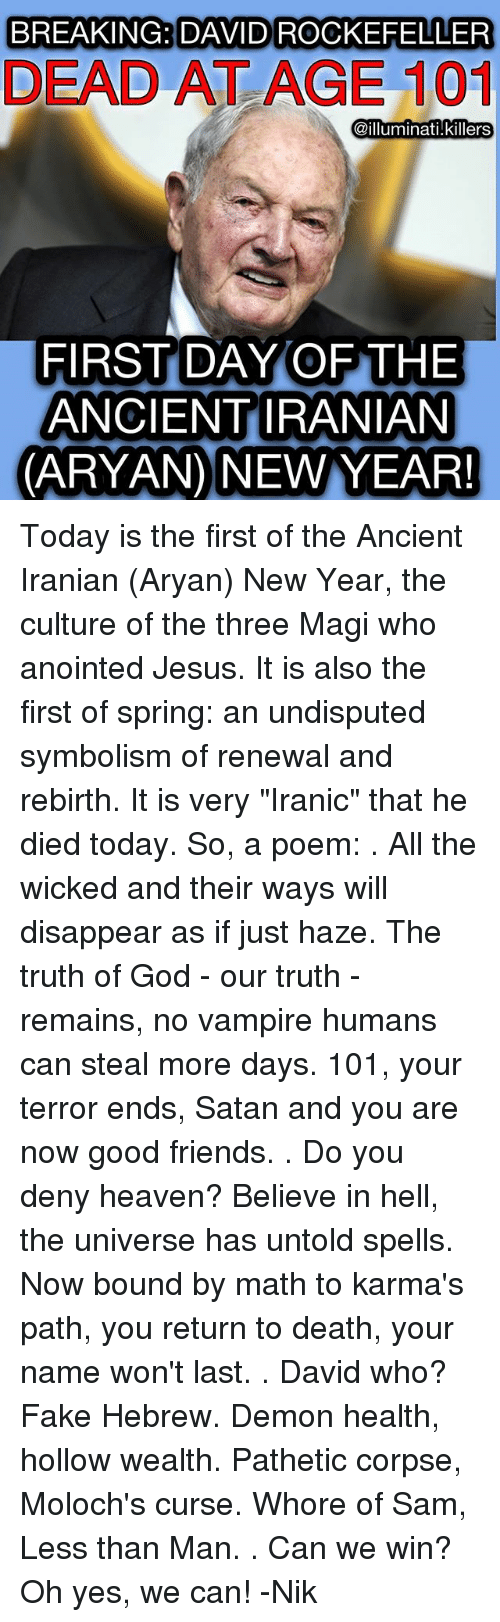 "Memes, 🤖, and Rebirth: BREAKING DAVID ROCKEFELLER  DEAD AT AGE 101  @illuminati Killers  FIRST DAY OF THE  ANCIENT IRANIAN  (ARYAN) NEW YEAR! Today is the first of the Ancient Iranian (Aryan) New Year, the culture of the three Magi who anointed Jesus. It is also the first of spring: an undisputed symbolism of renewal and rebirth. It is very ""Iranic"" that he died today. So, a poem: . All the wicked and their ways will disappear as if just haze. The truth of God - our truth - remains, no vampire humans can steal more days. 101, your terror ends, Satan and you are now good friends. . Do you deny heaven? Believe in hell, the universe has untold spells. Now bound by math to karma's path, you return to death, your name won't last. . David who? Fake Hebrew. Demon health, hollow wealth. Pathetic corpse, Moloch's curse. Whore of Sam, Less than Man. . Can we win? Oh yes, we can! -Nik"